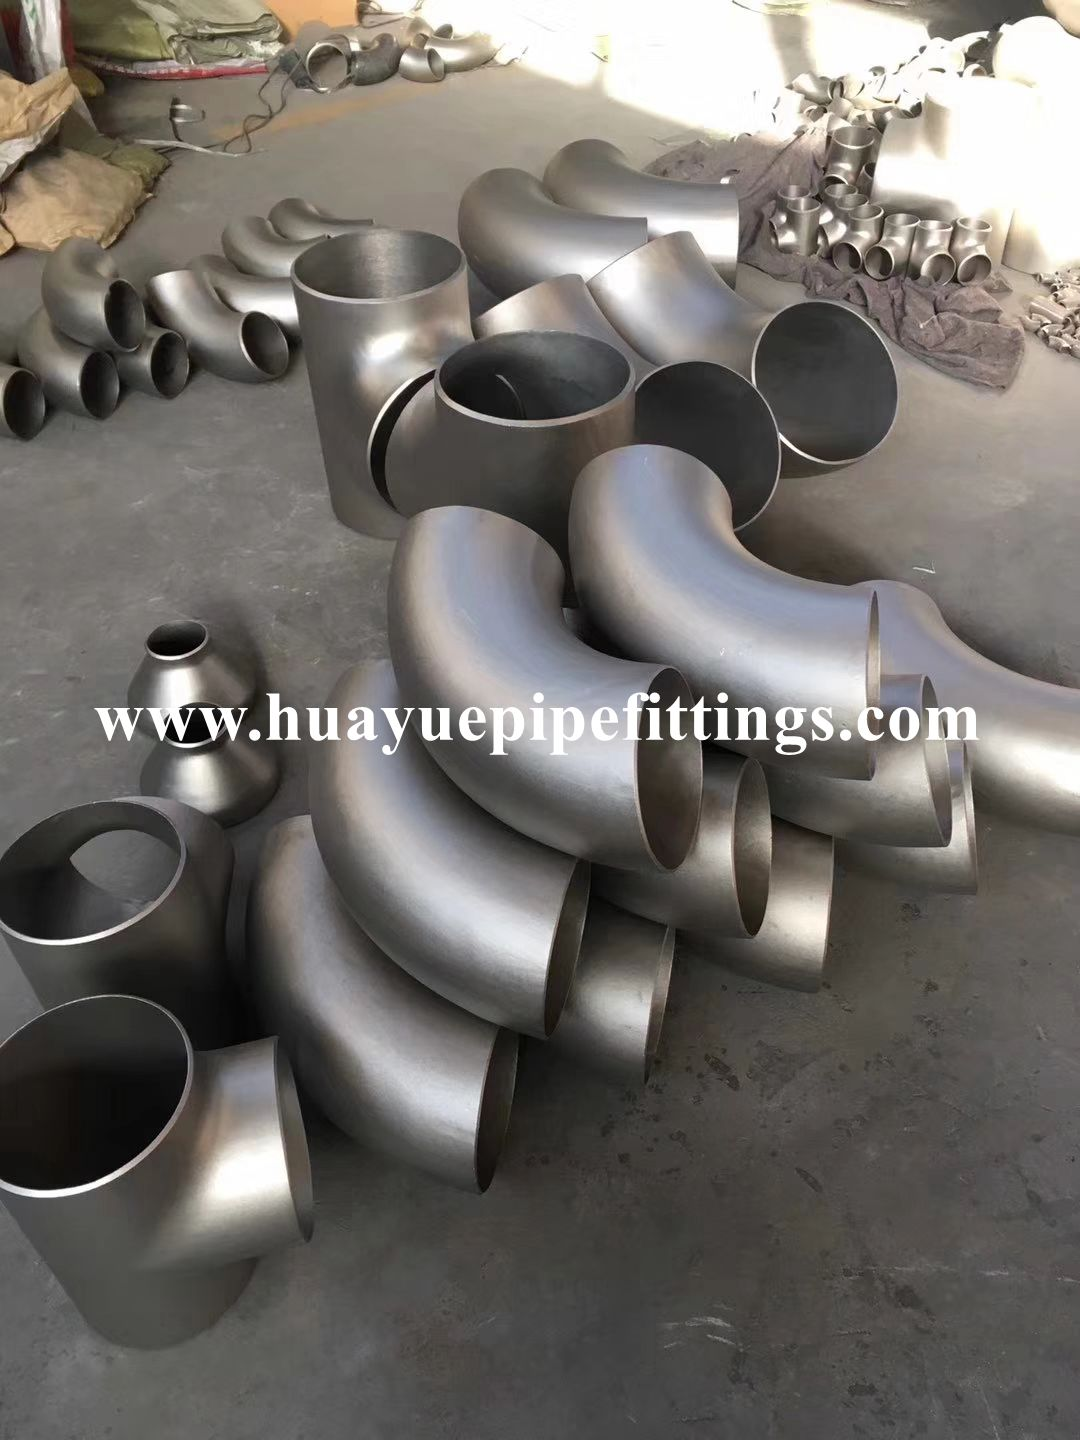 ASTM 304 Stainless Steel Pipe Elbow and Pipe Tee